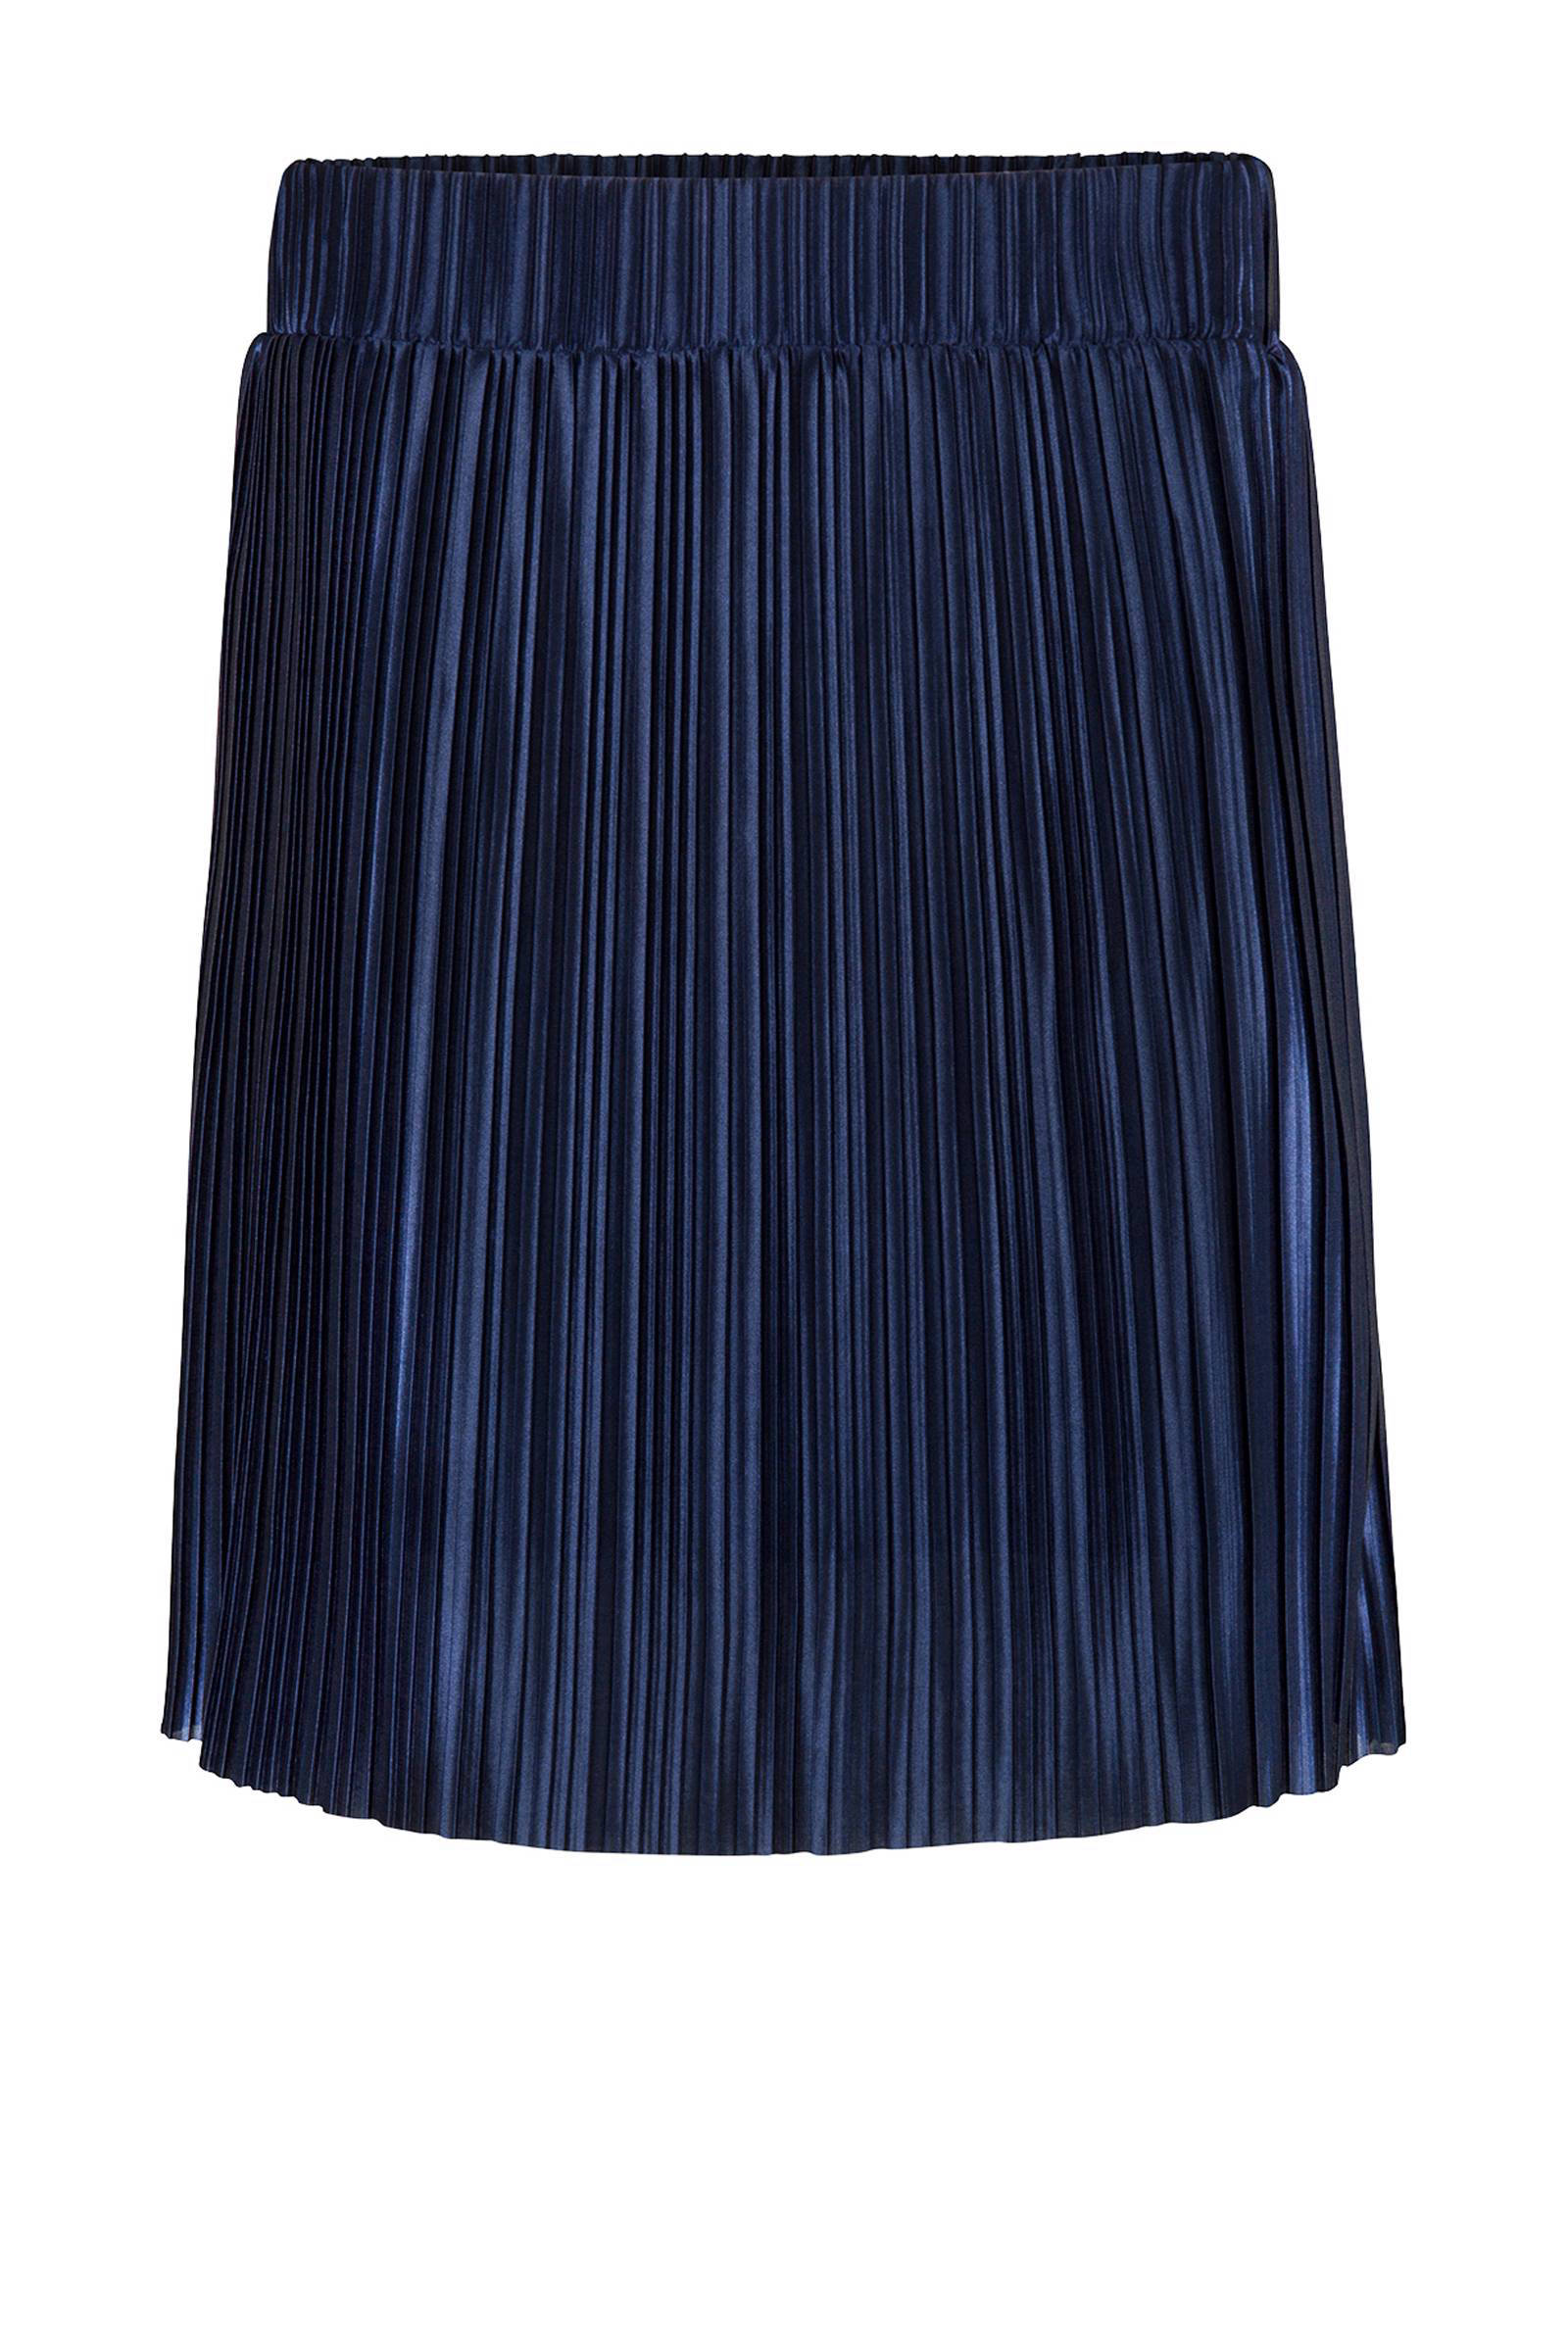 WE Fashion plissé rok marineblauw (dames)